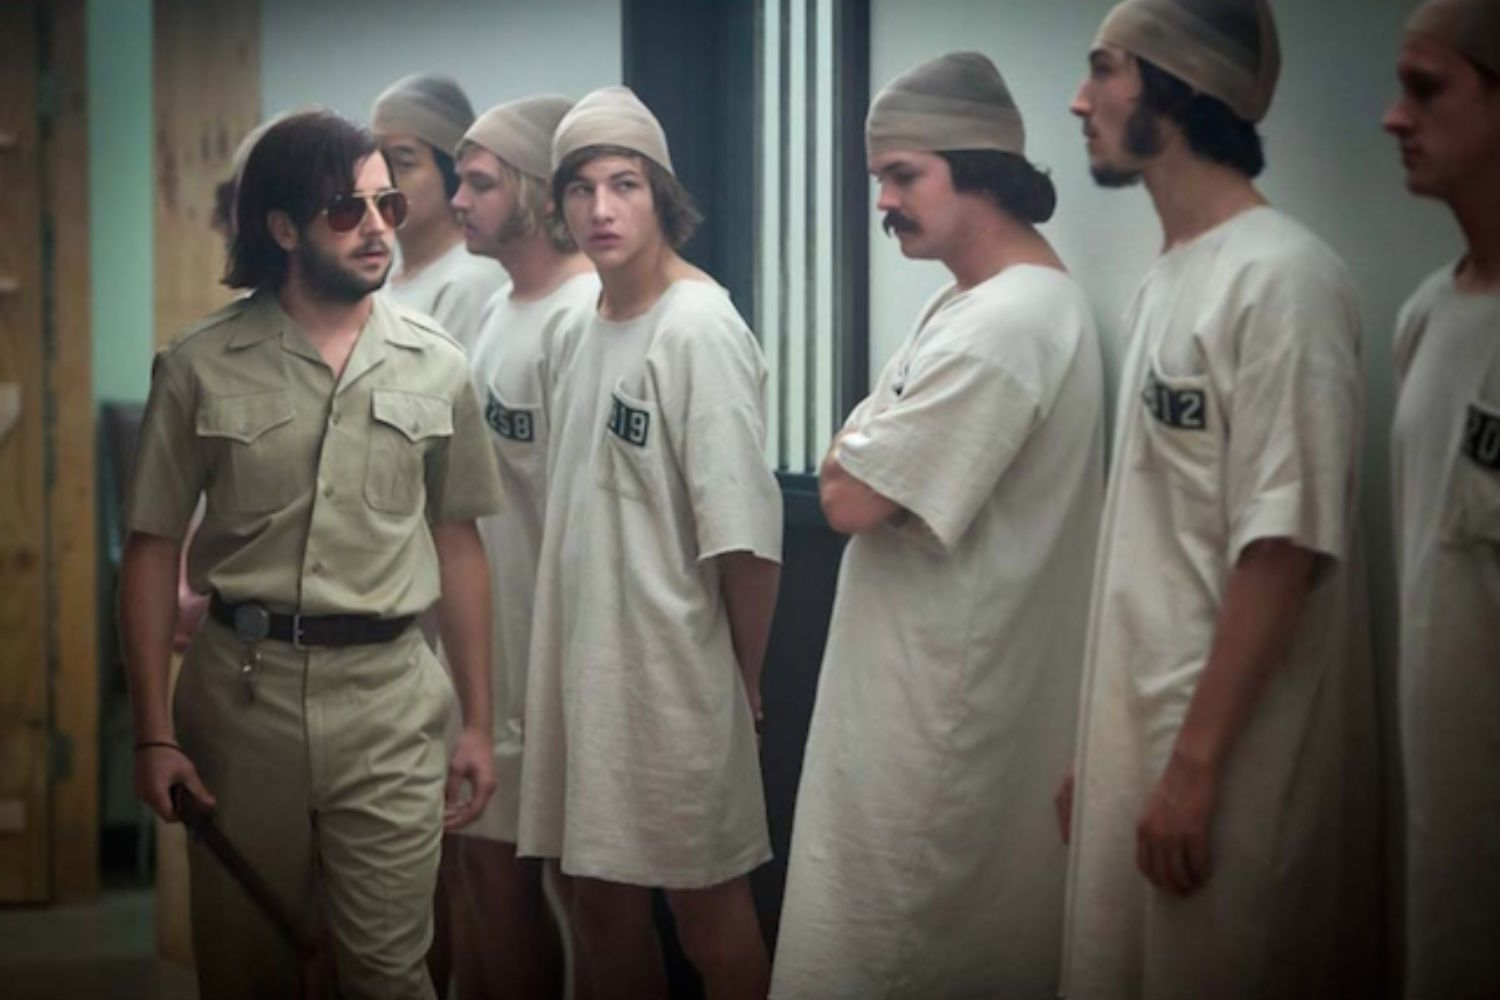 An Important But Rarely Discussed Lesson of the Stanford Prison Experiment